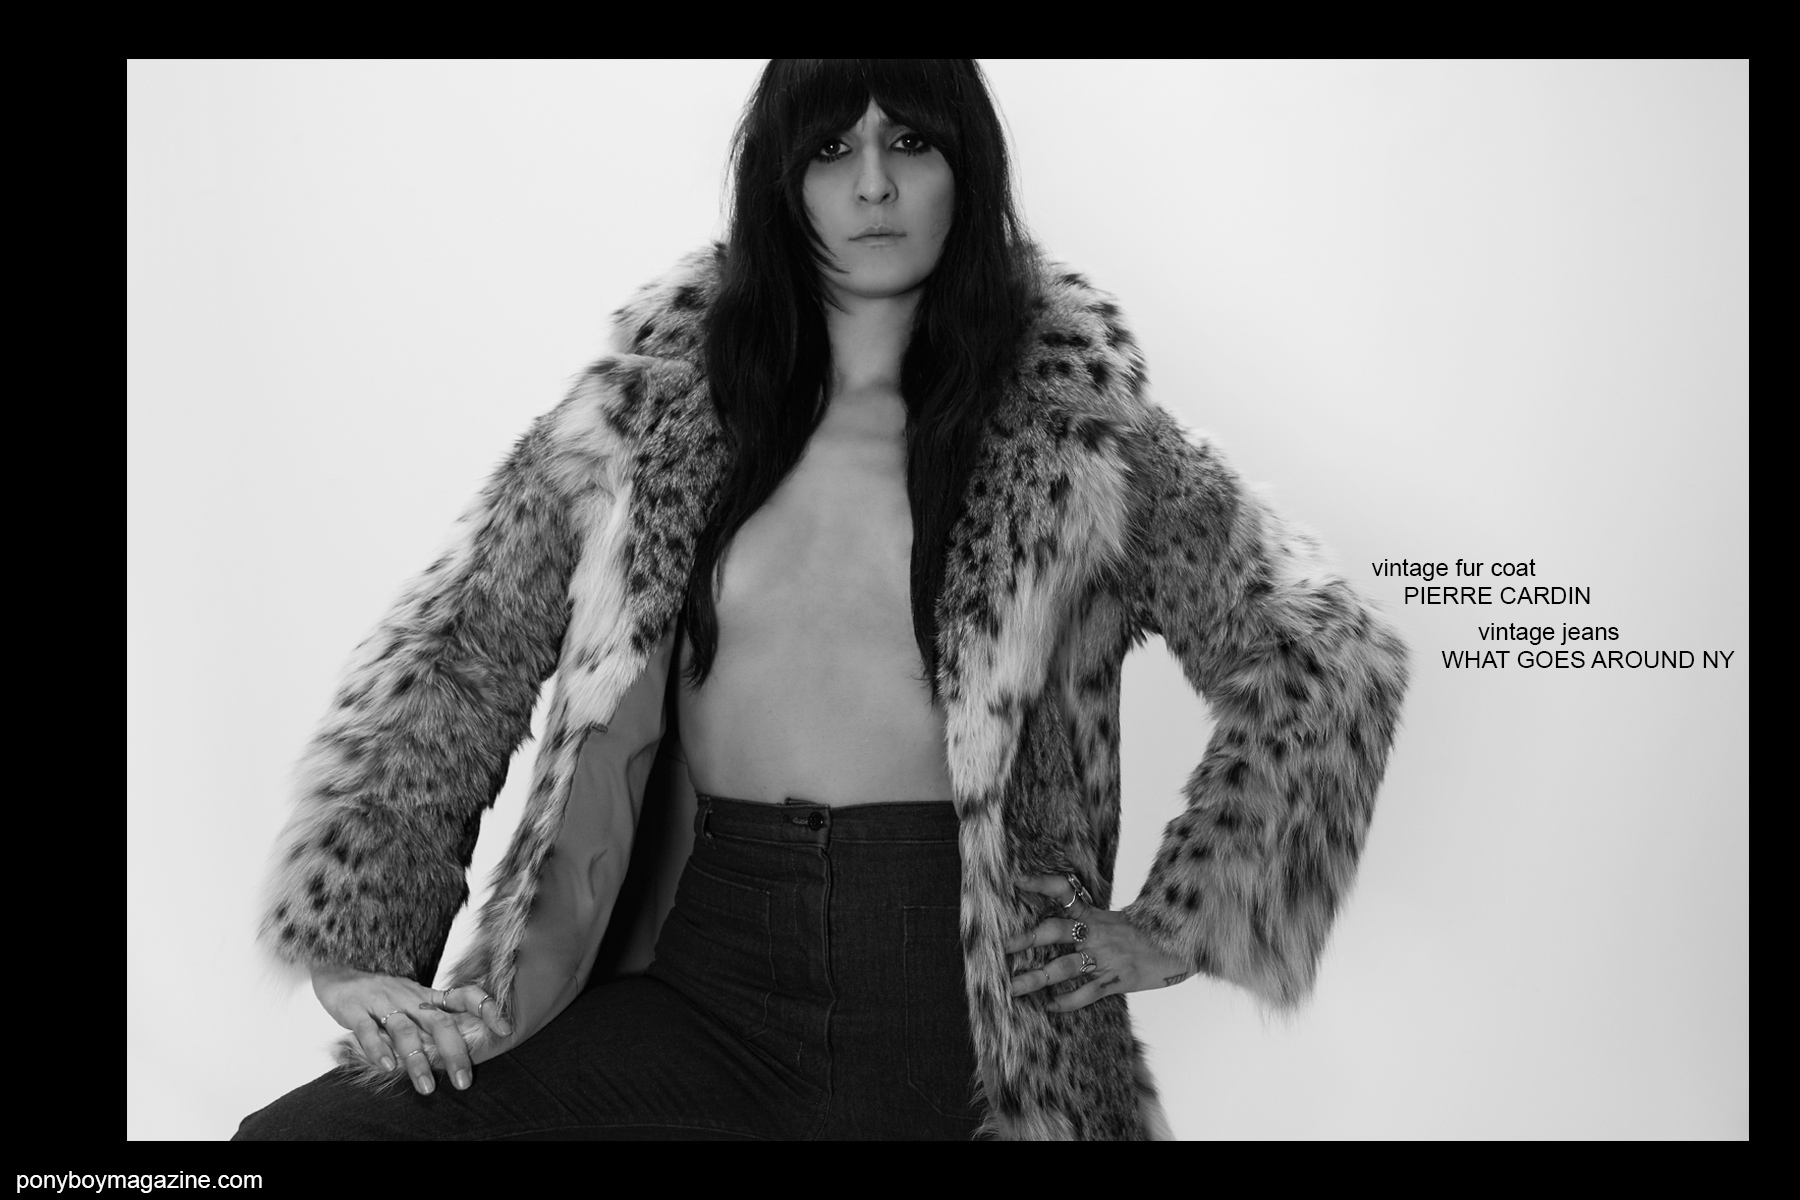 In a vintage Pierre Cardin fur coat, Kristin Gallegos photographed by Alexander Thompson for Ponyboy magazine NY.